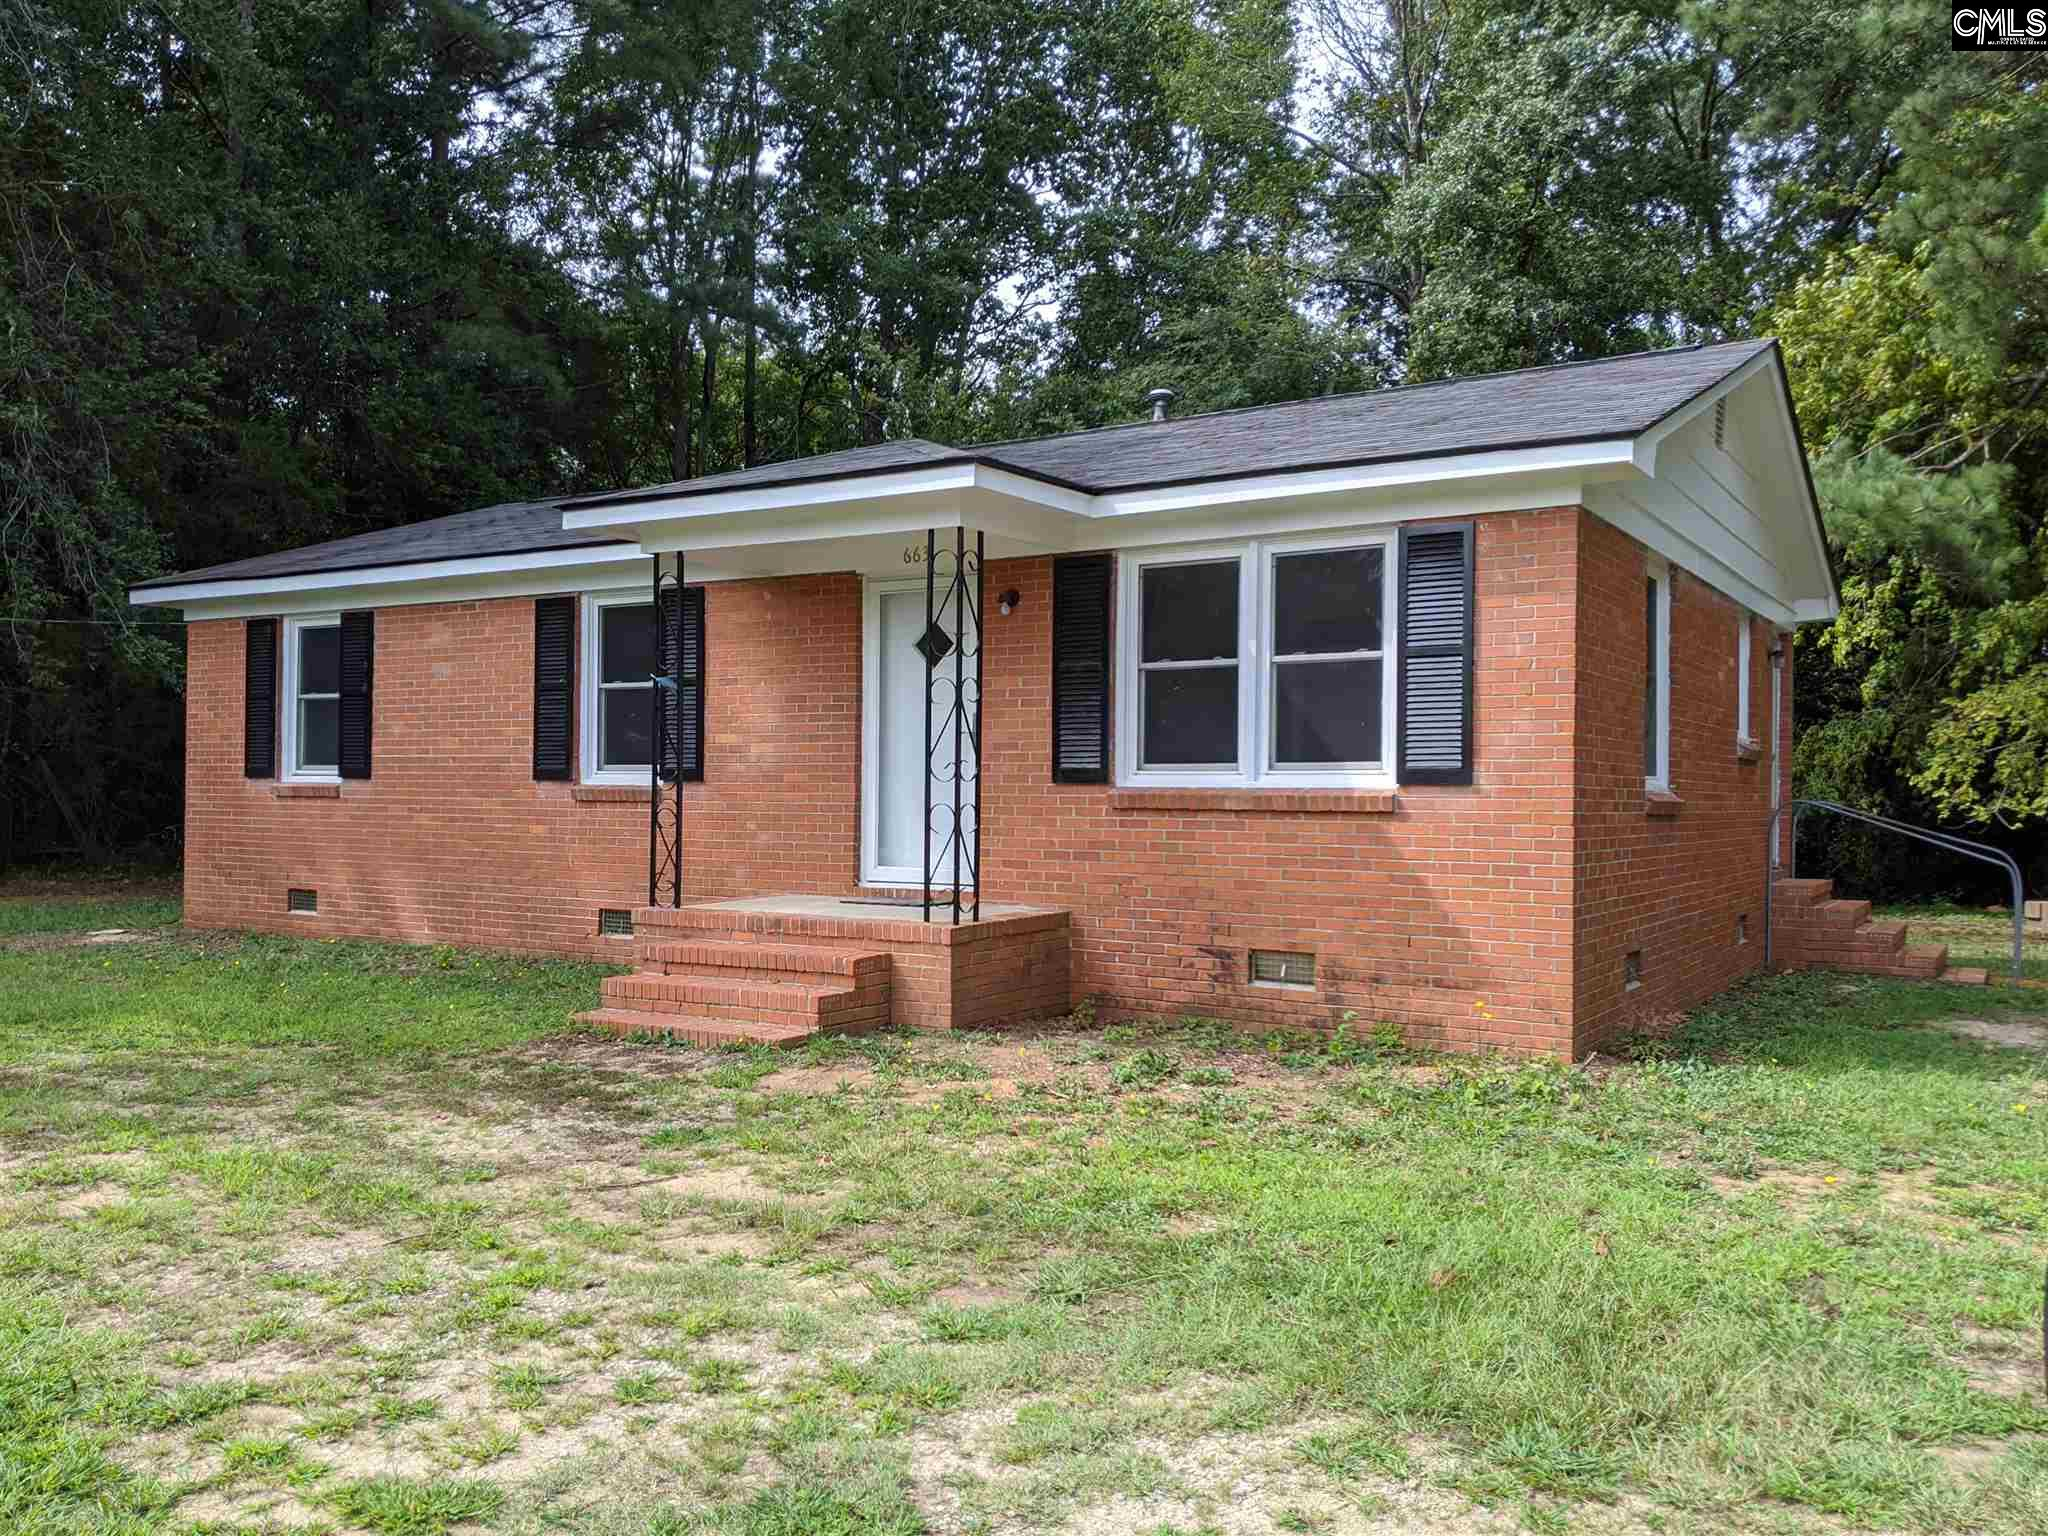 663 Old Chester Winnsboro, SC 29180